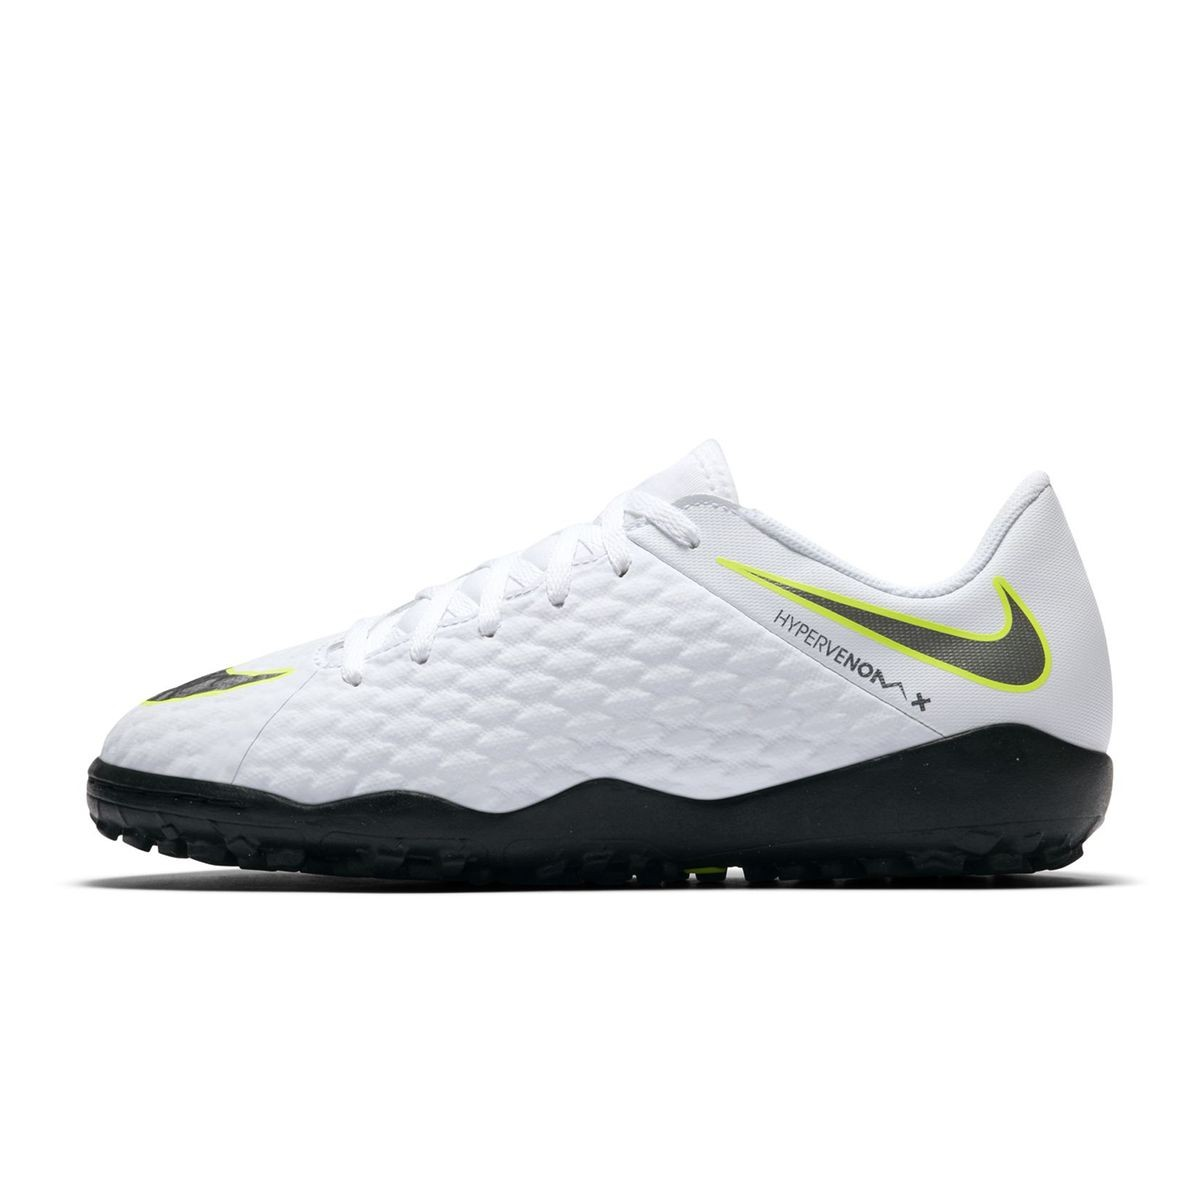 fast delivery 100% authentic to buy Chaussures Football Nike Hypervenomx Phantom Iii Academy Tf ...